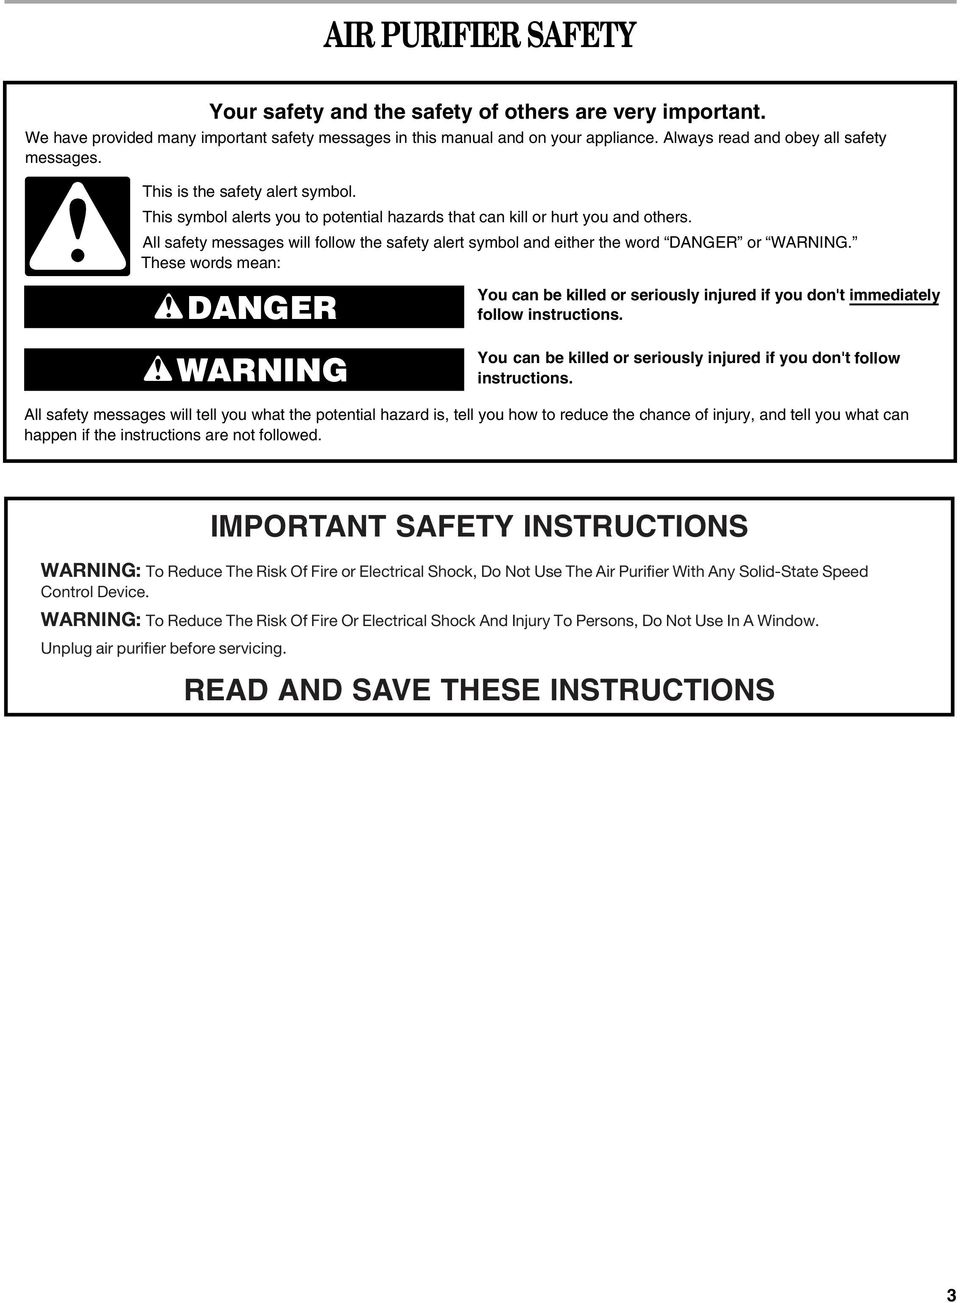 All safety messages will follow the safety alert symbol and either the word DANGER or WARNING.